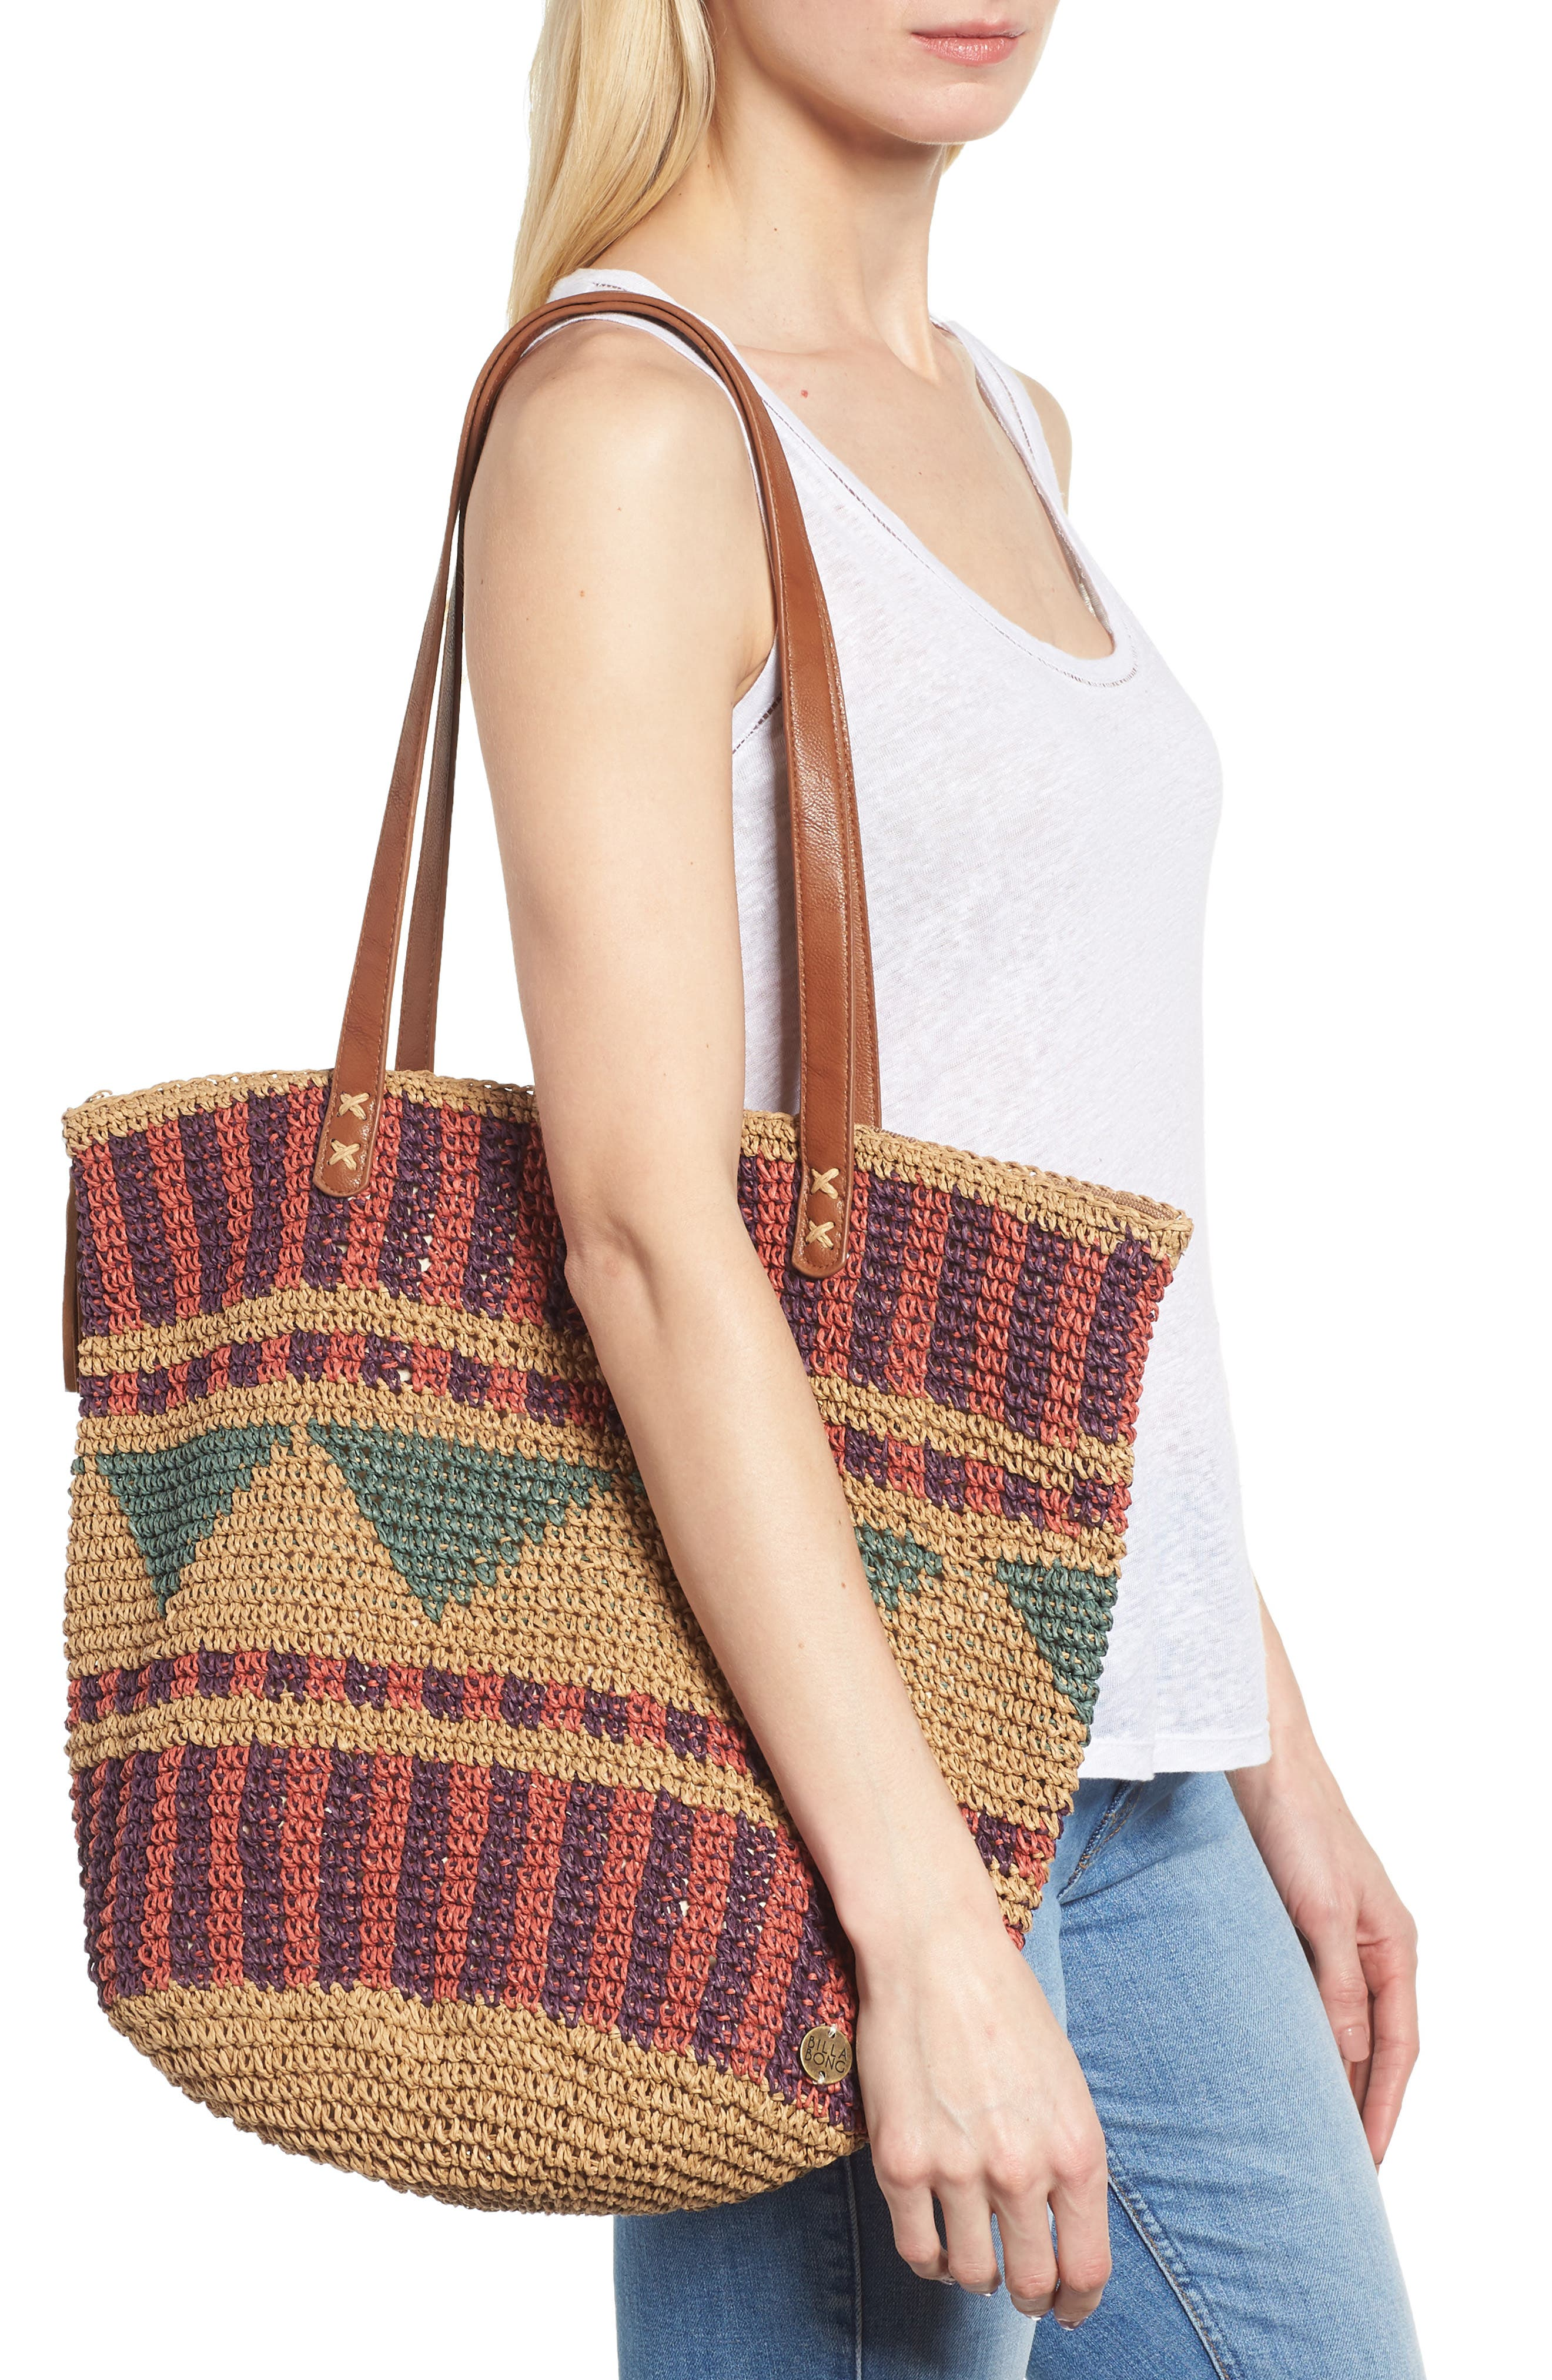 East of Dover Print Straw Tote,                             Alternate thumbnail 2, color,                             600